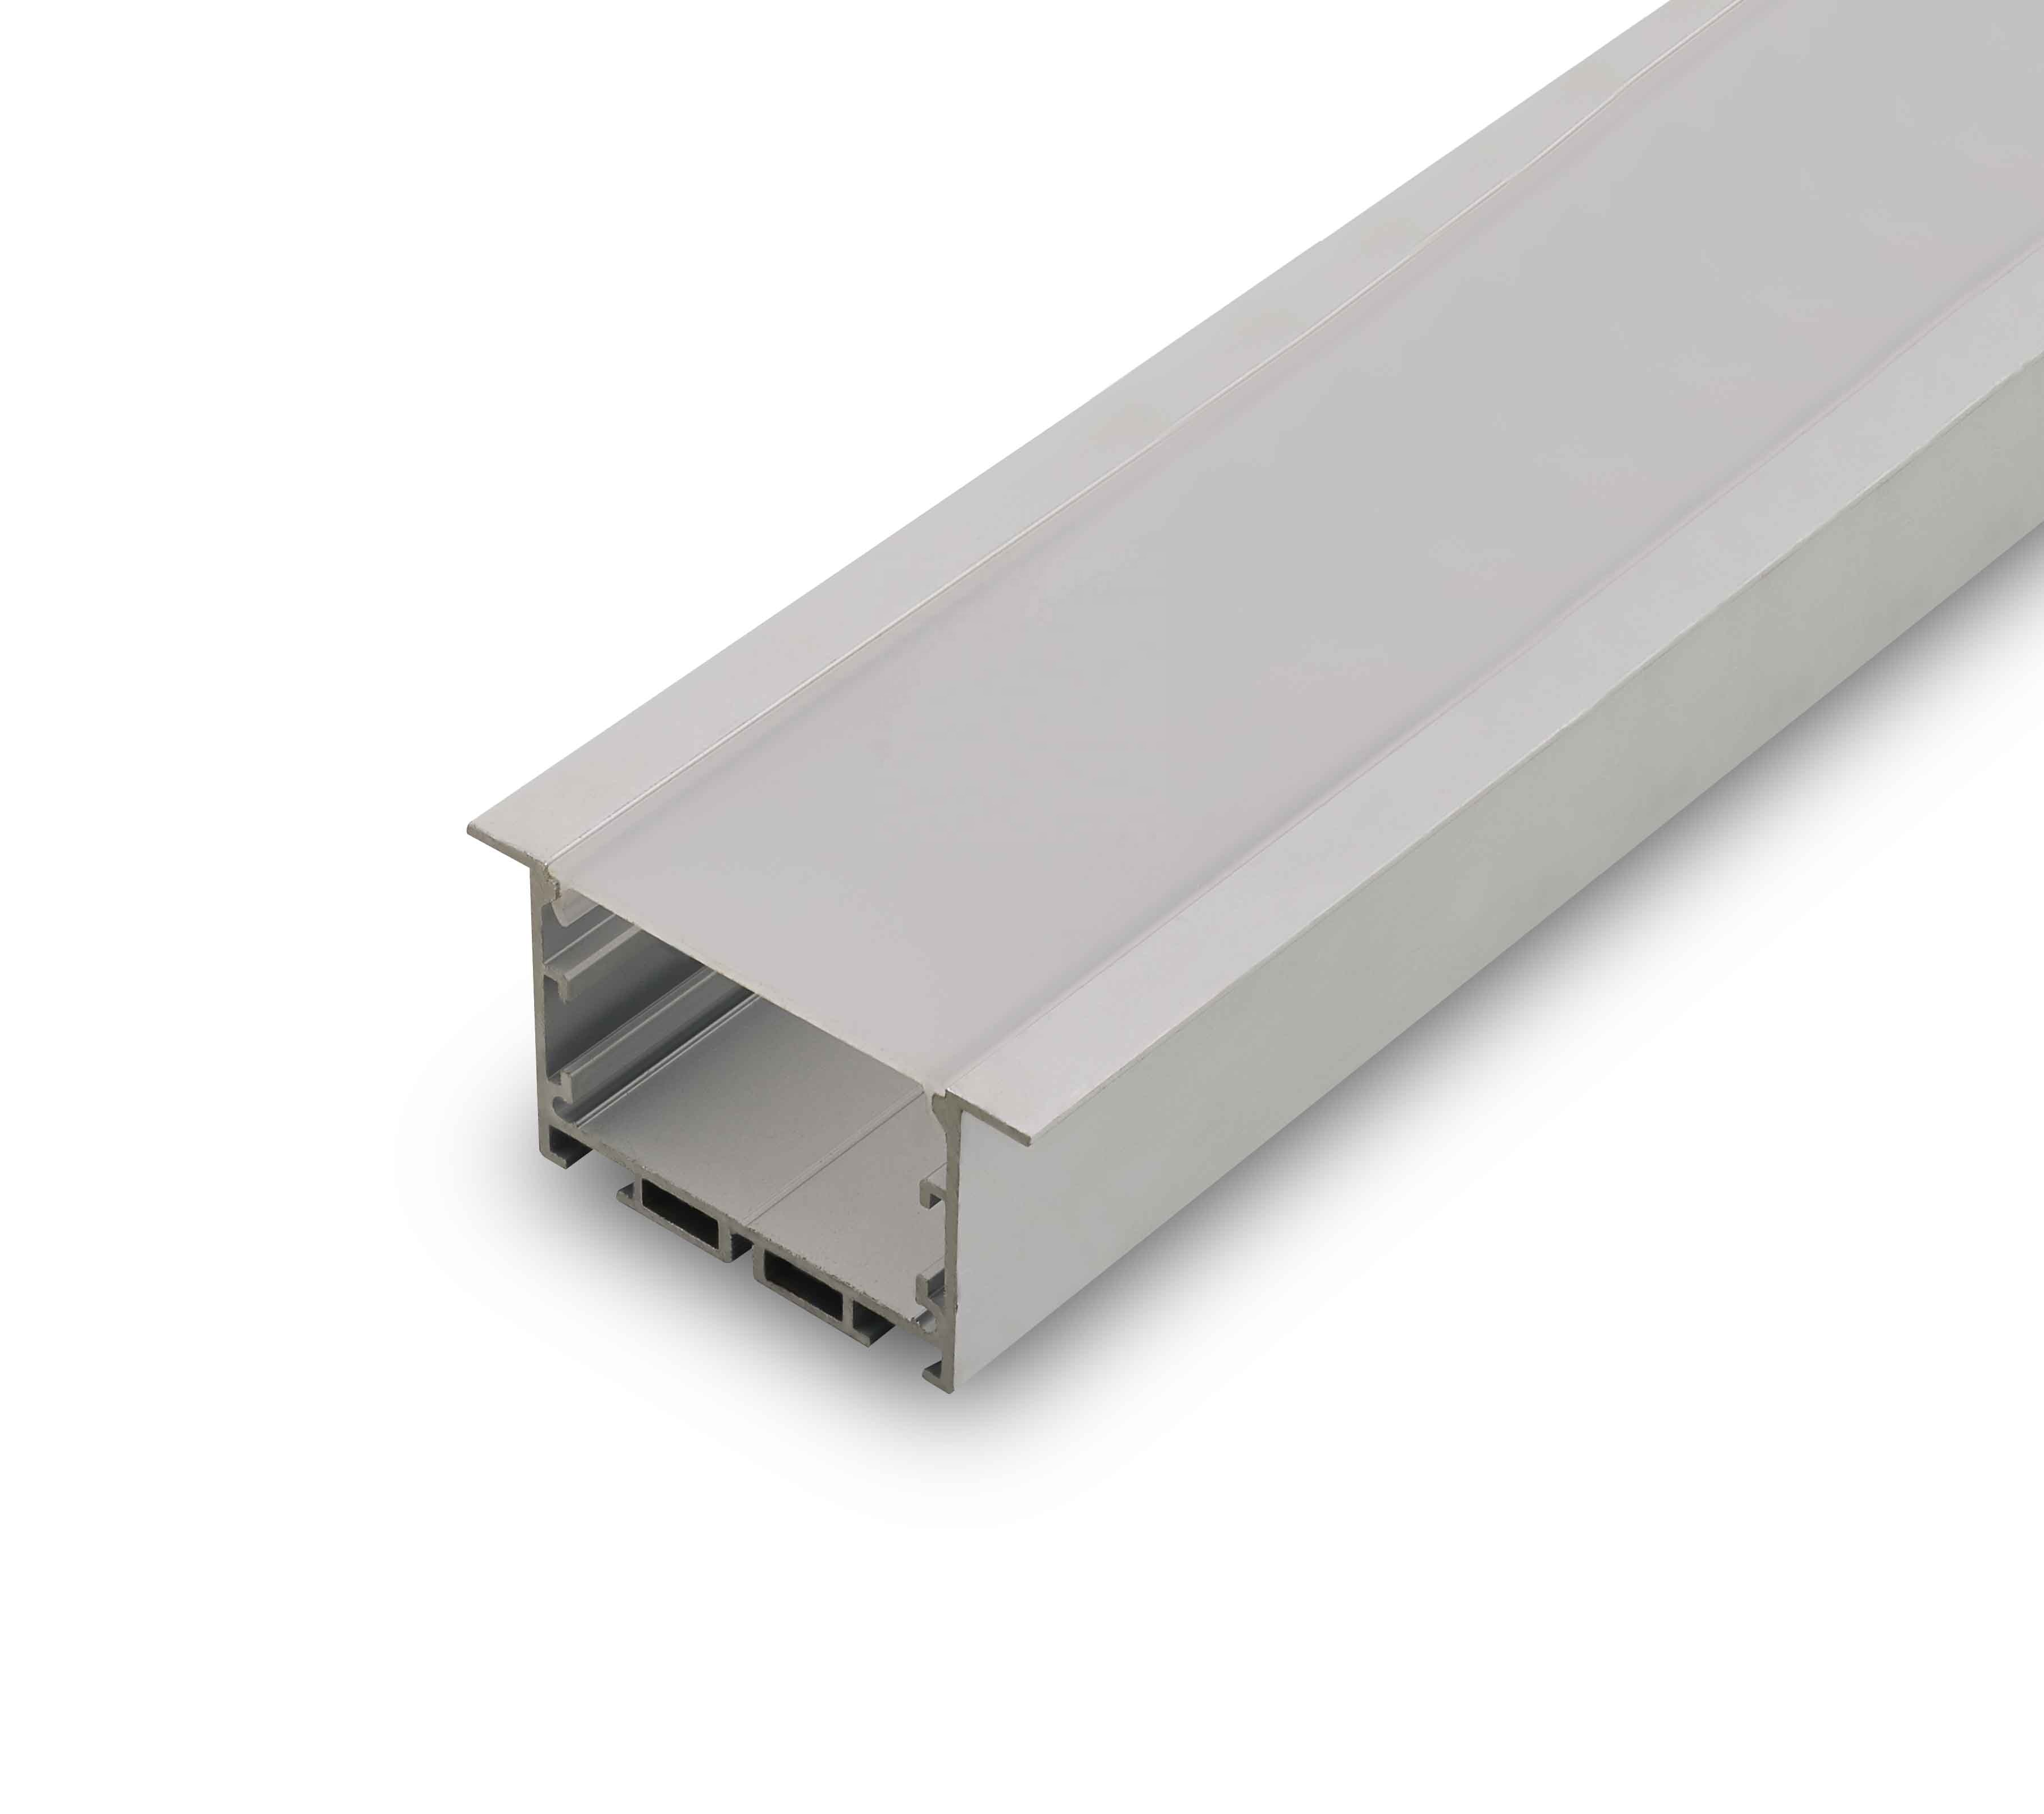 Opal Uv Resistant Pvc Floor Led Profile Waterproof Ip67 Rating Led Mounting Profile For Led Strip